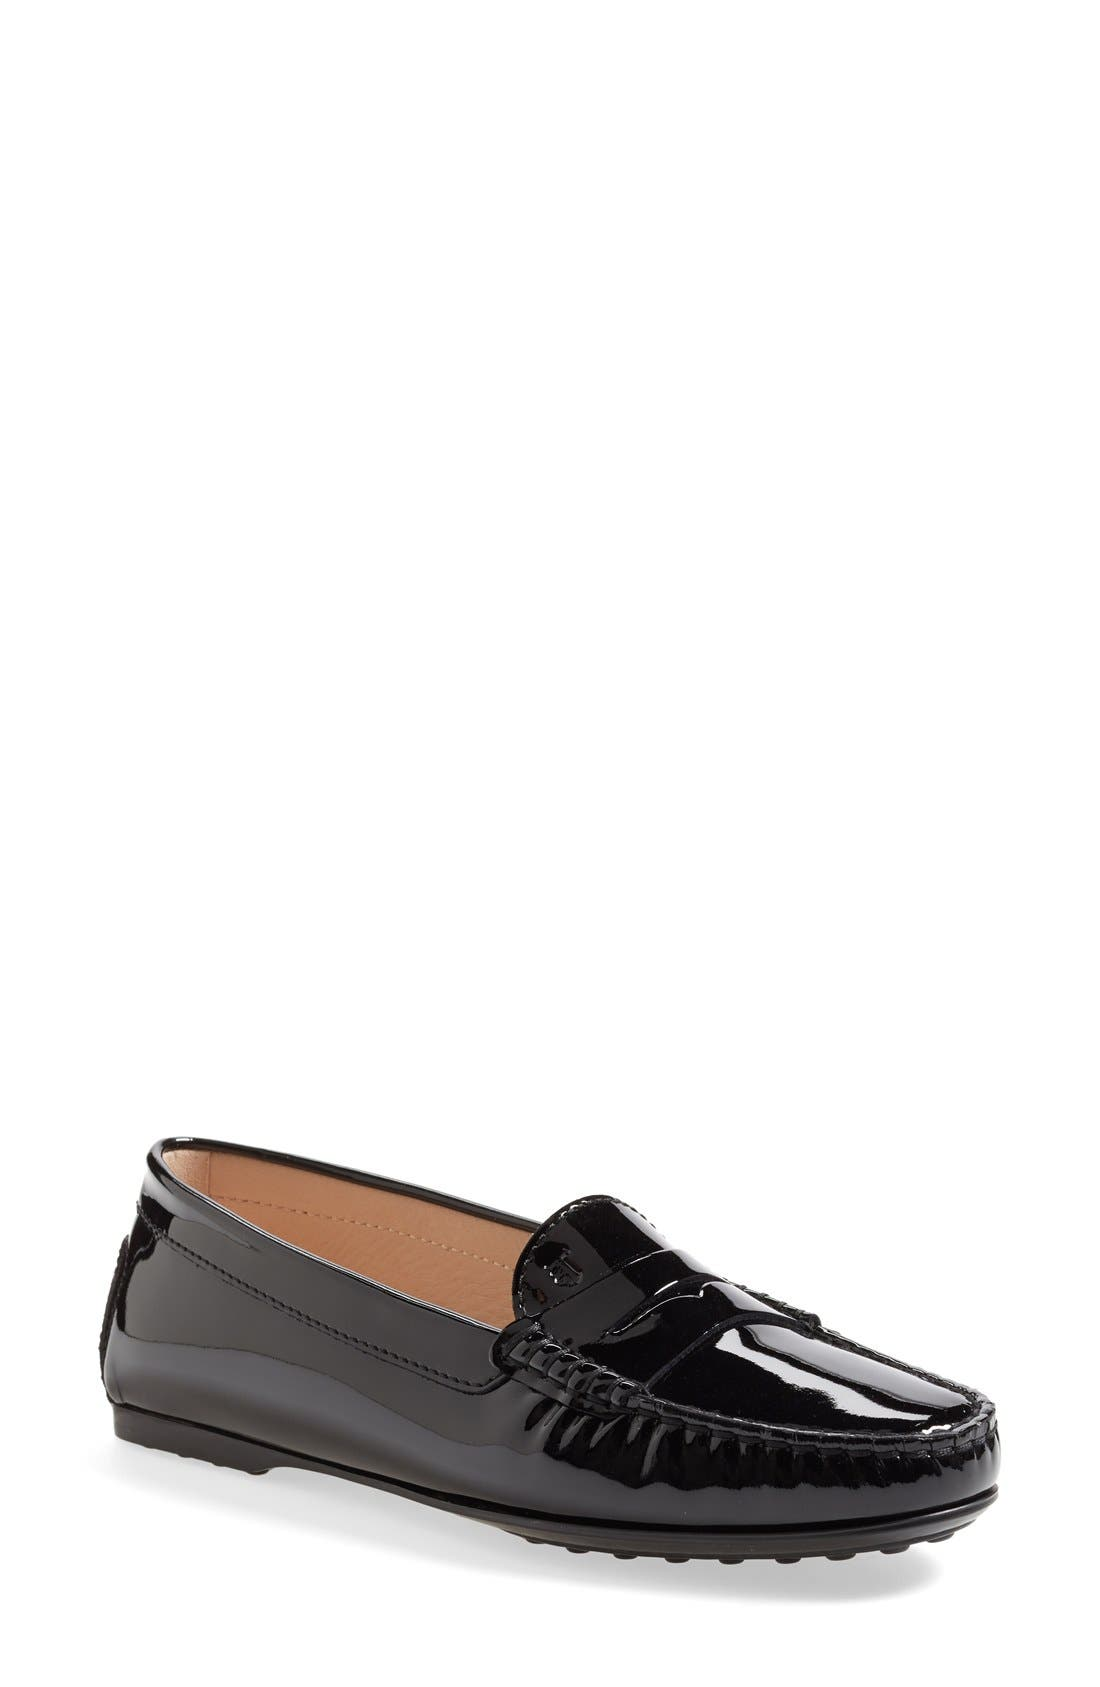 Alternate Image 1 Selected - Tod's Patent Leather Penny Loafer (Women)